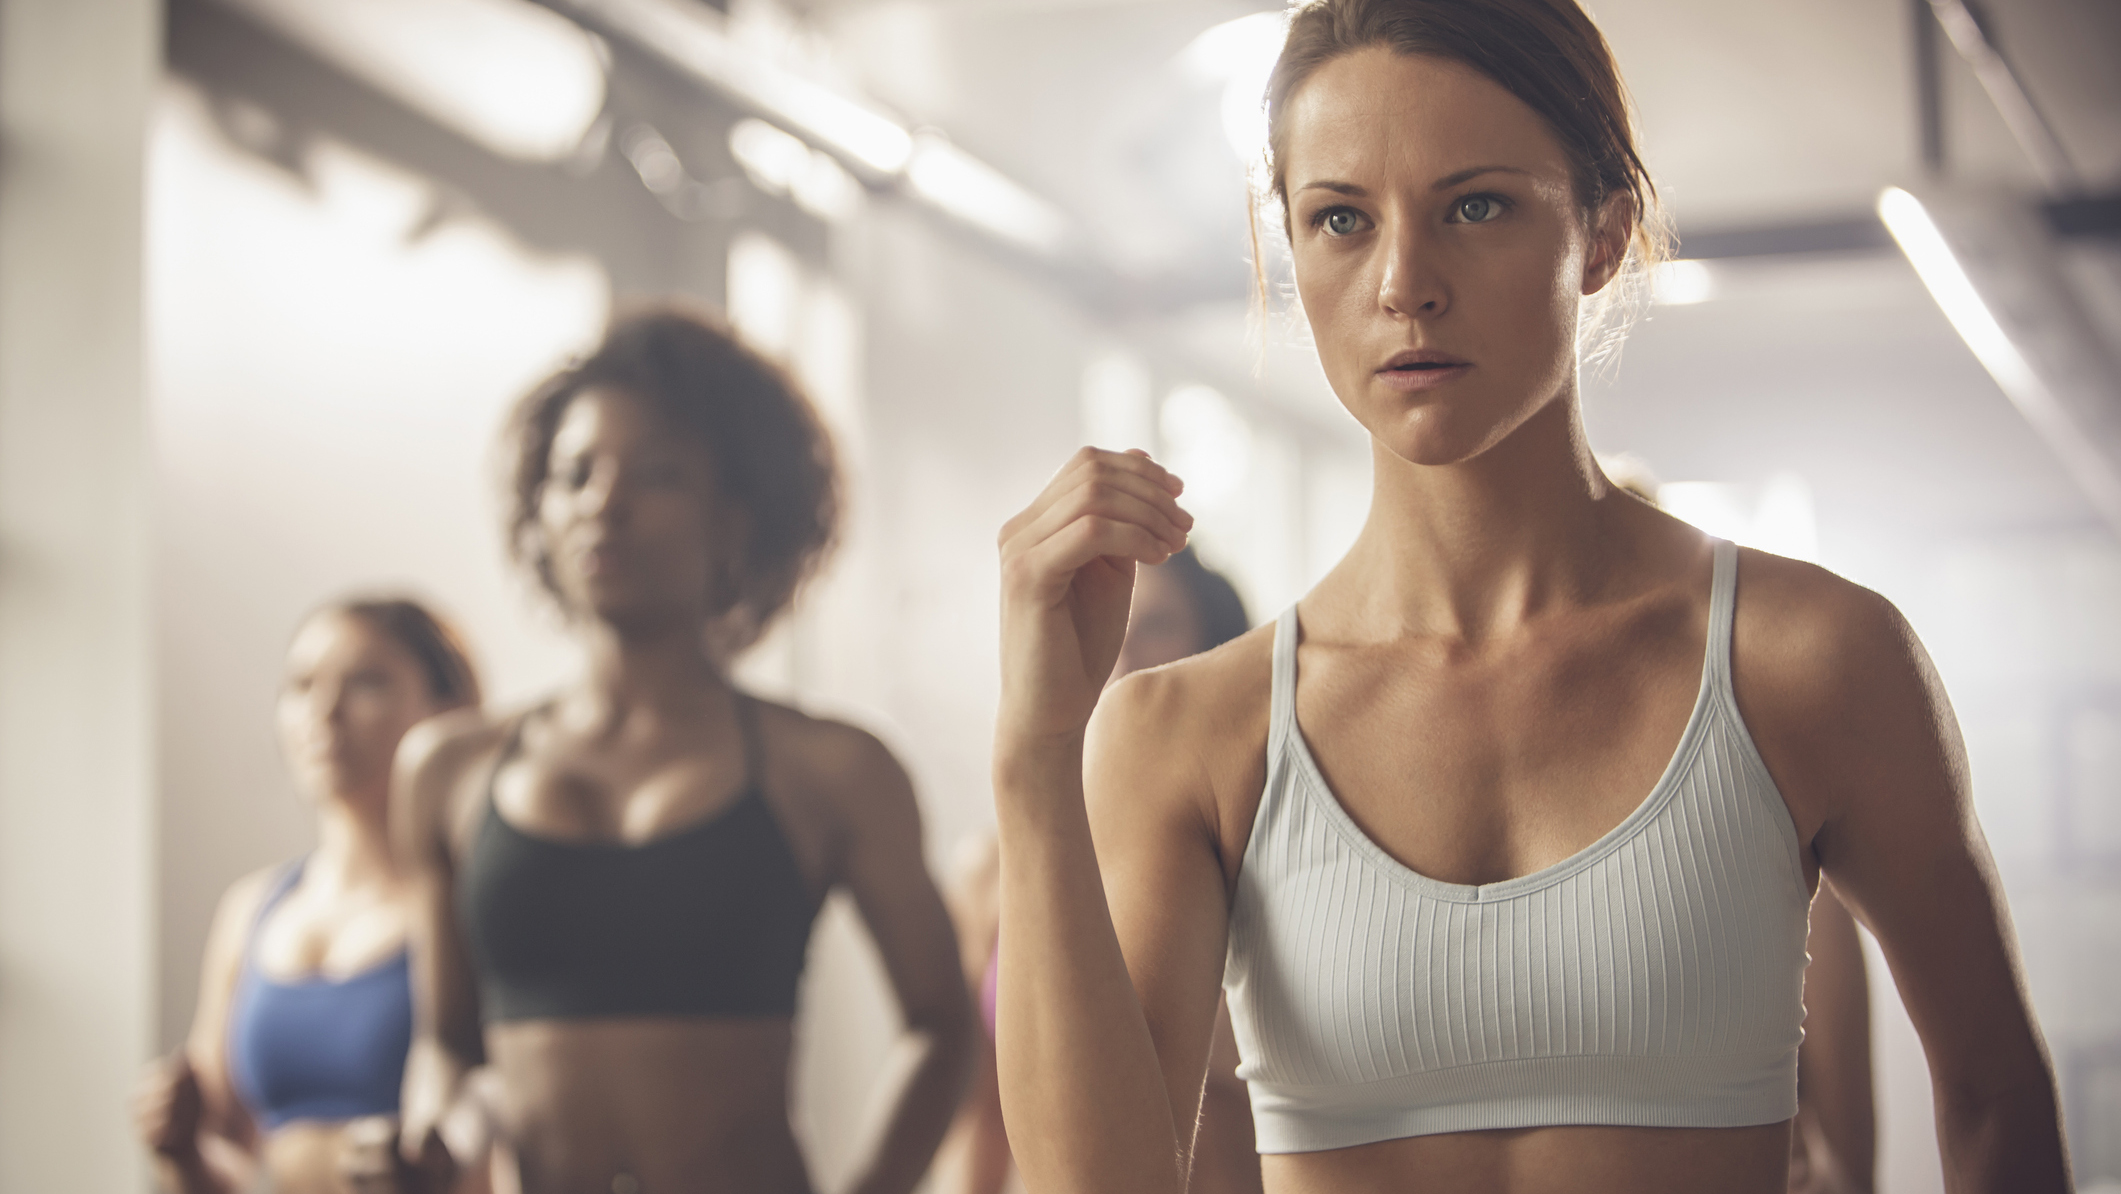 Can you really exercise away anxiety and depression?